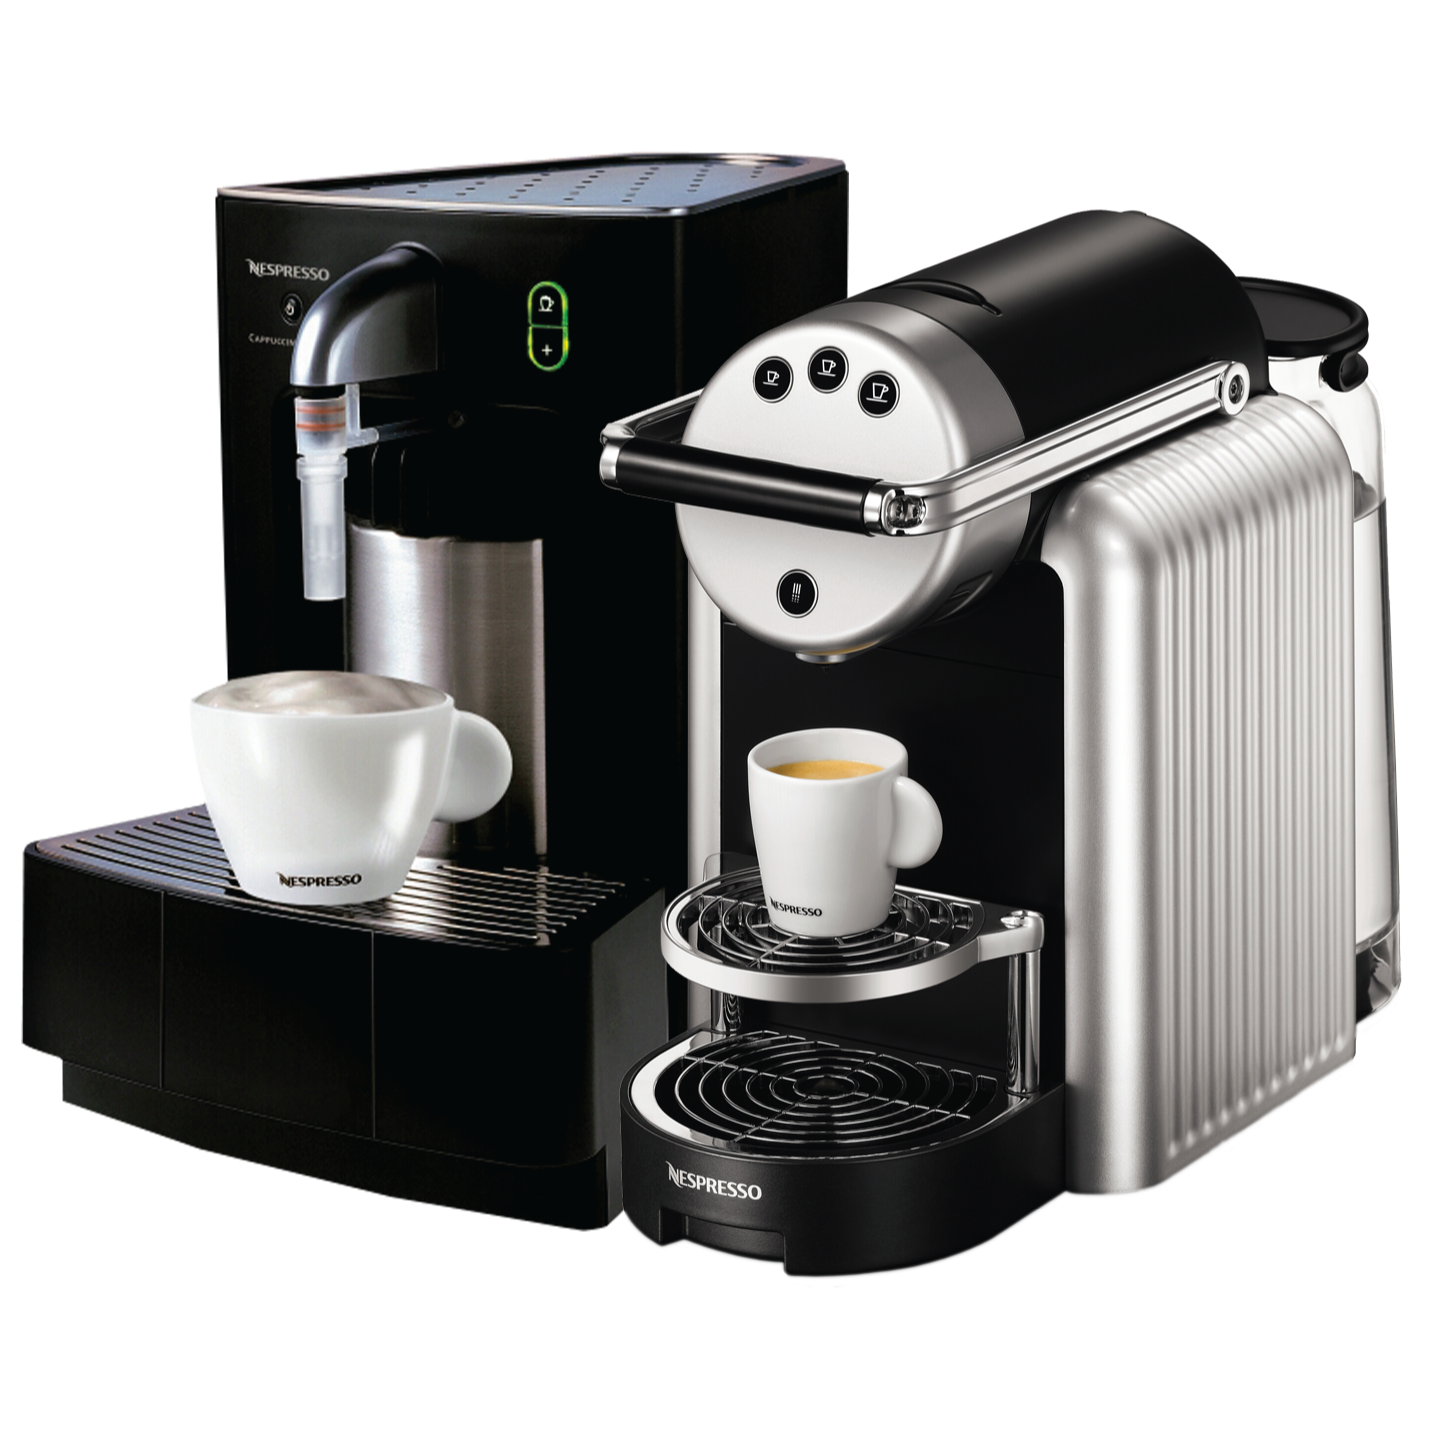 Zenius is the first coffee machine by Nespresso with all the right connections, ideal for any size business where quality, intuition and simplicity are all important. Fast and efficient, Zenius quickly prepares exceptional coffee and hot water at the touch of a button. Pair with with a CAPPUCCINATORE to make the perfect cappuccino for your business.